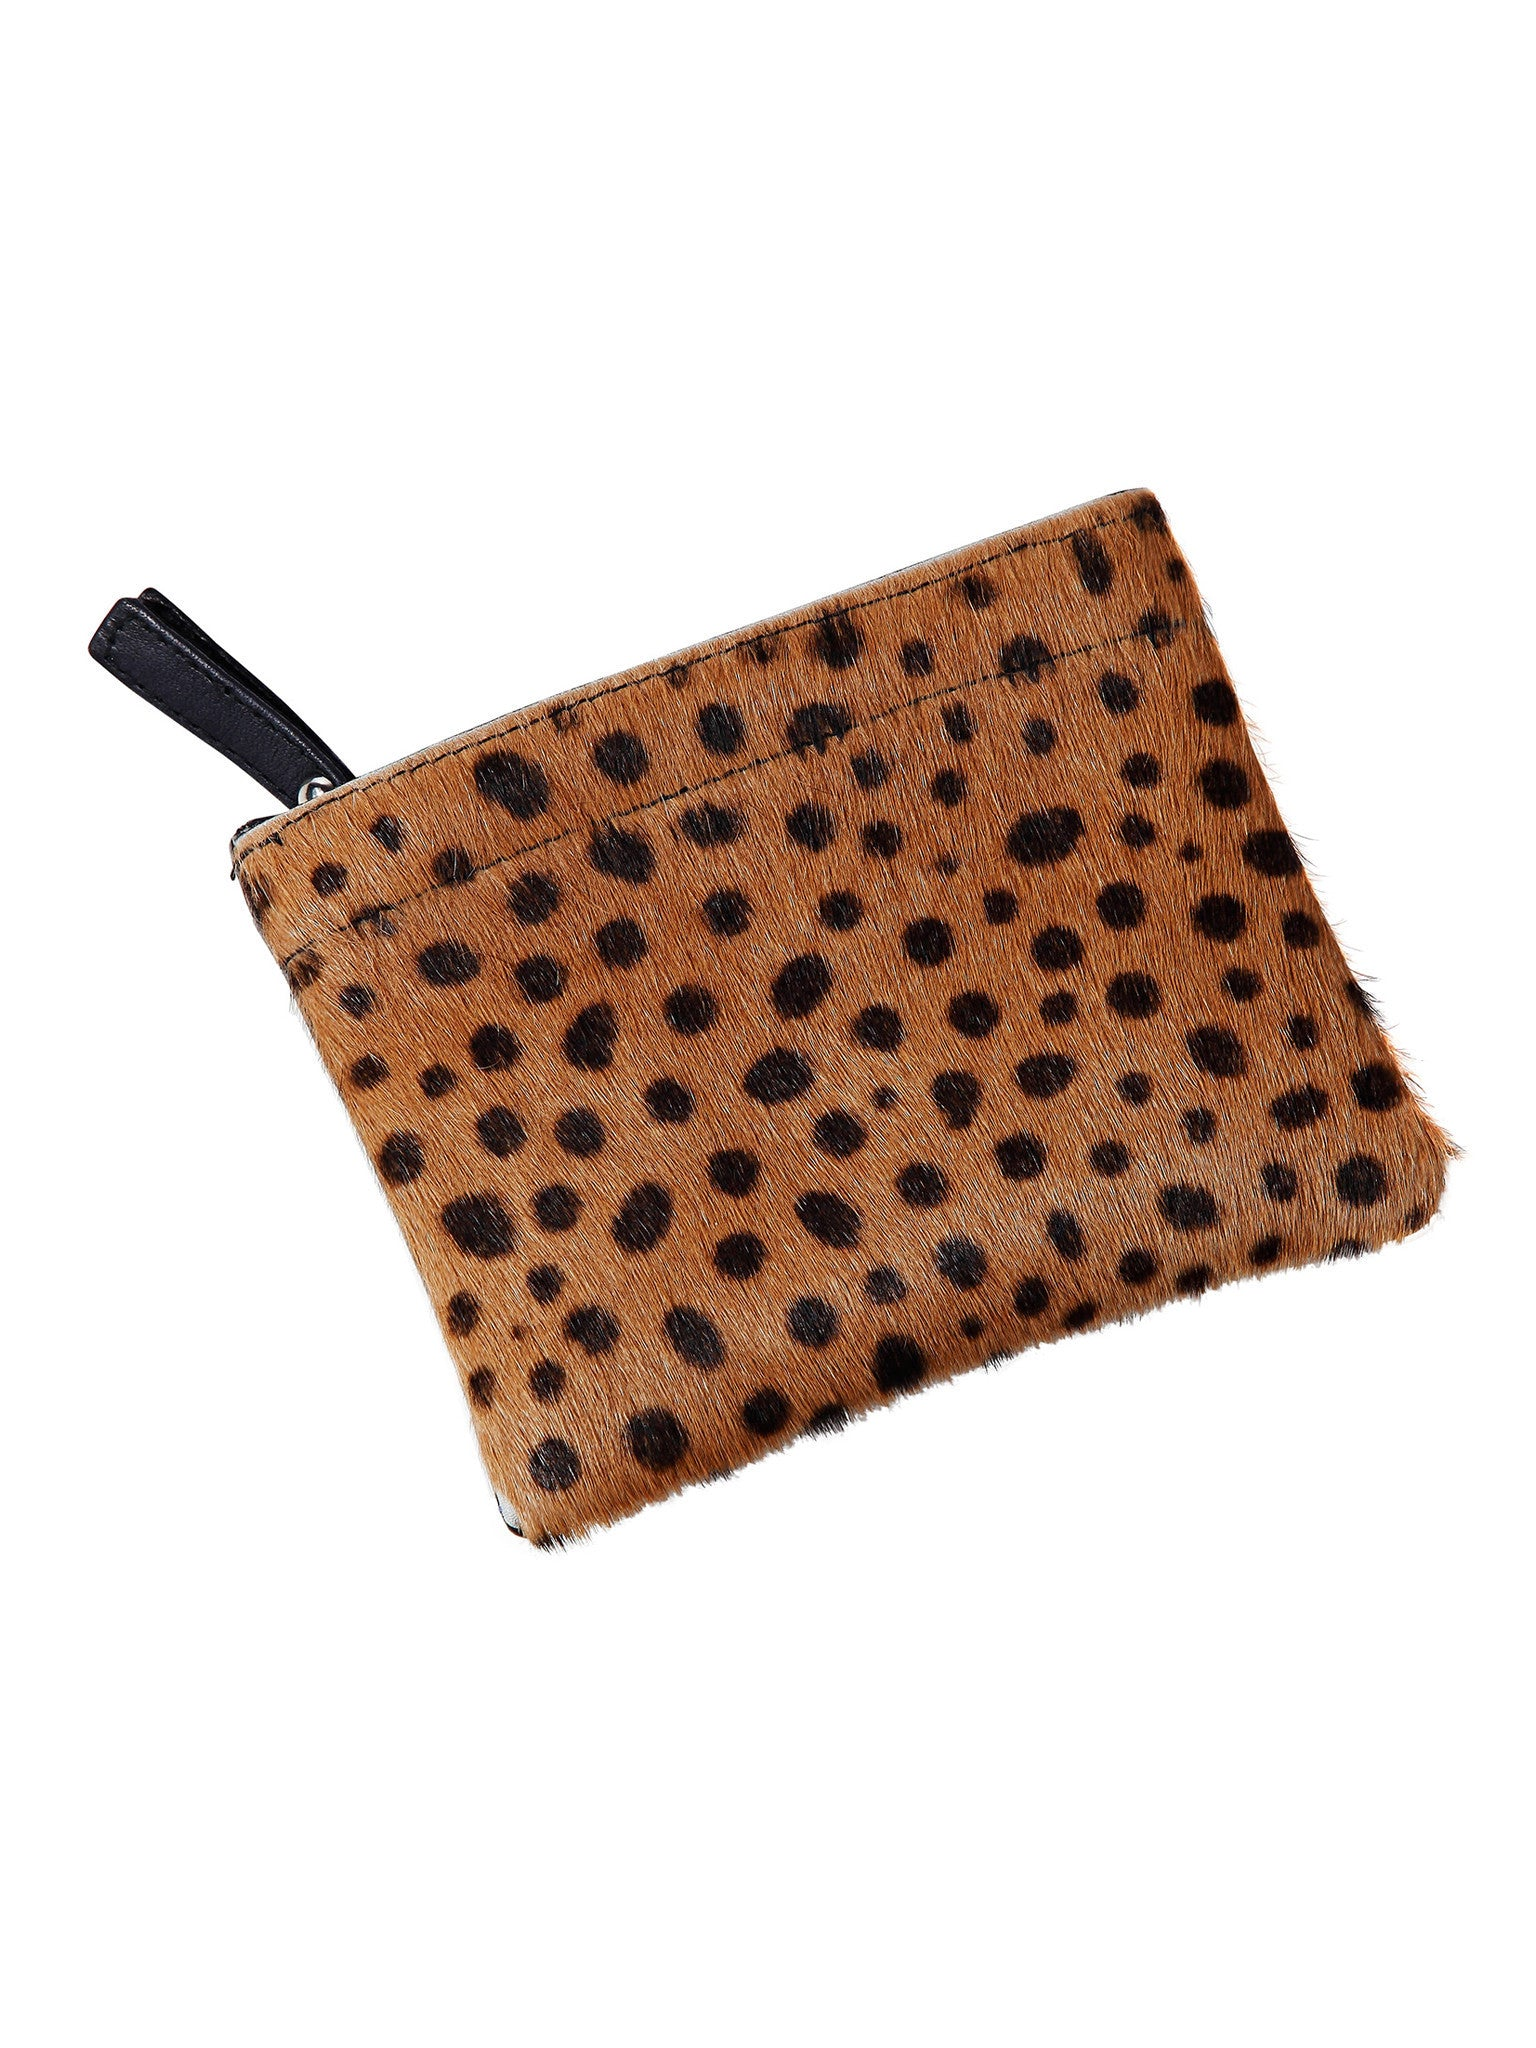 4141d208e Little_Joe_Woman_by_Gail_Elliott-LEATHER_AND_LEOPARD_PRINT_PONY_HAIR_POUCH.jpg?v=1458191208